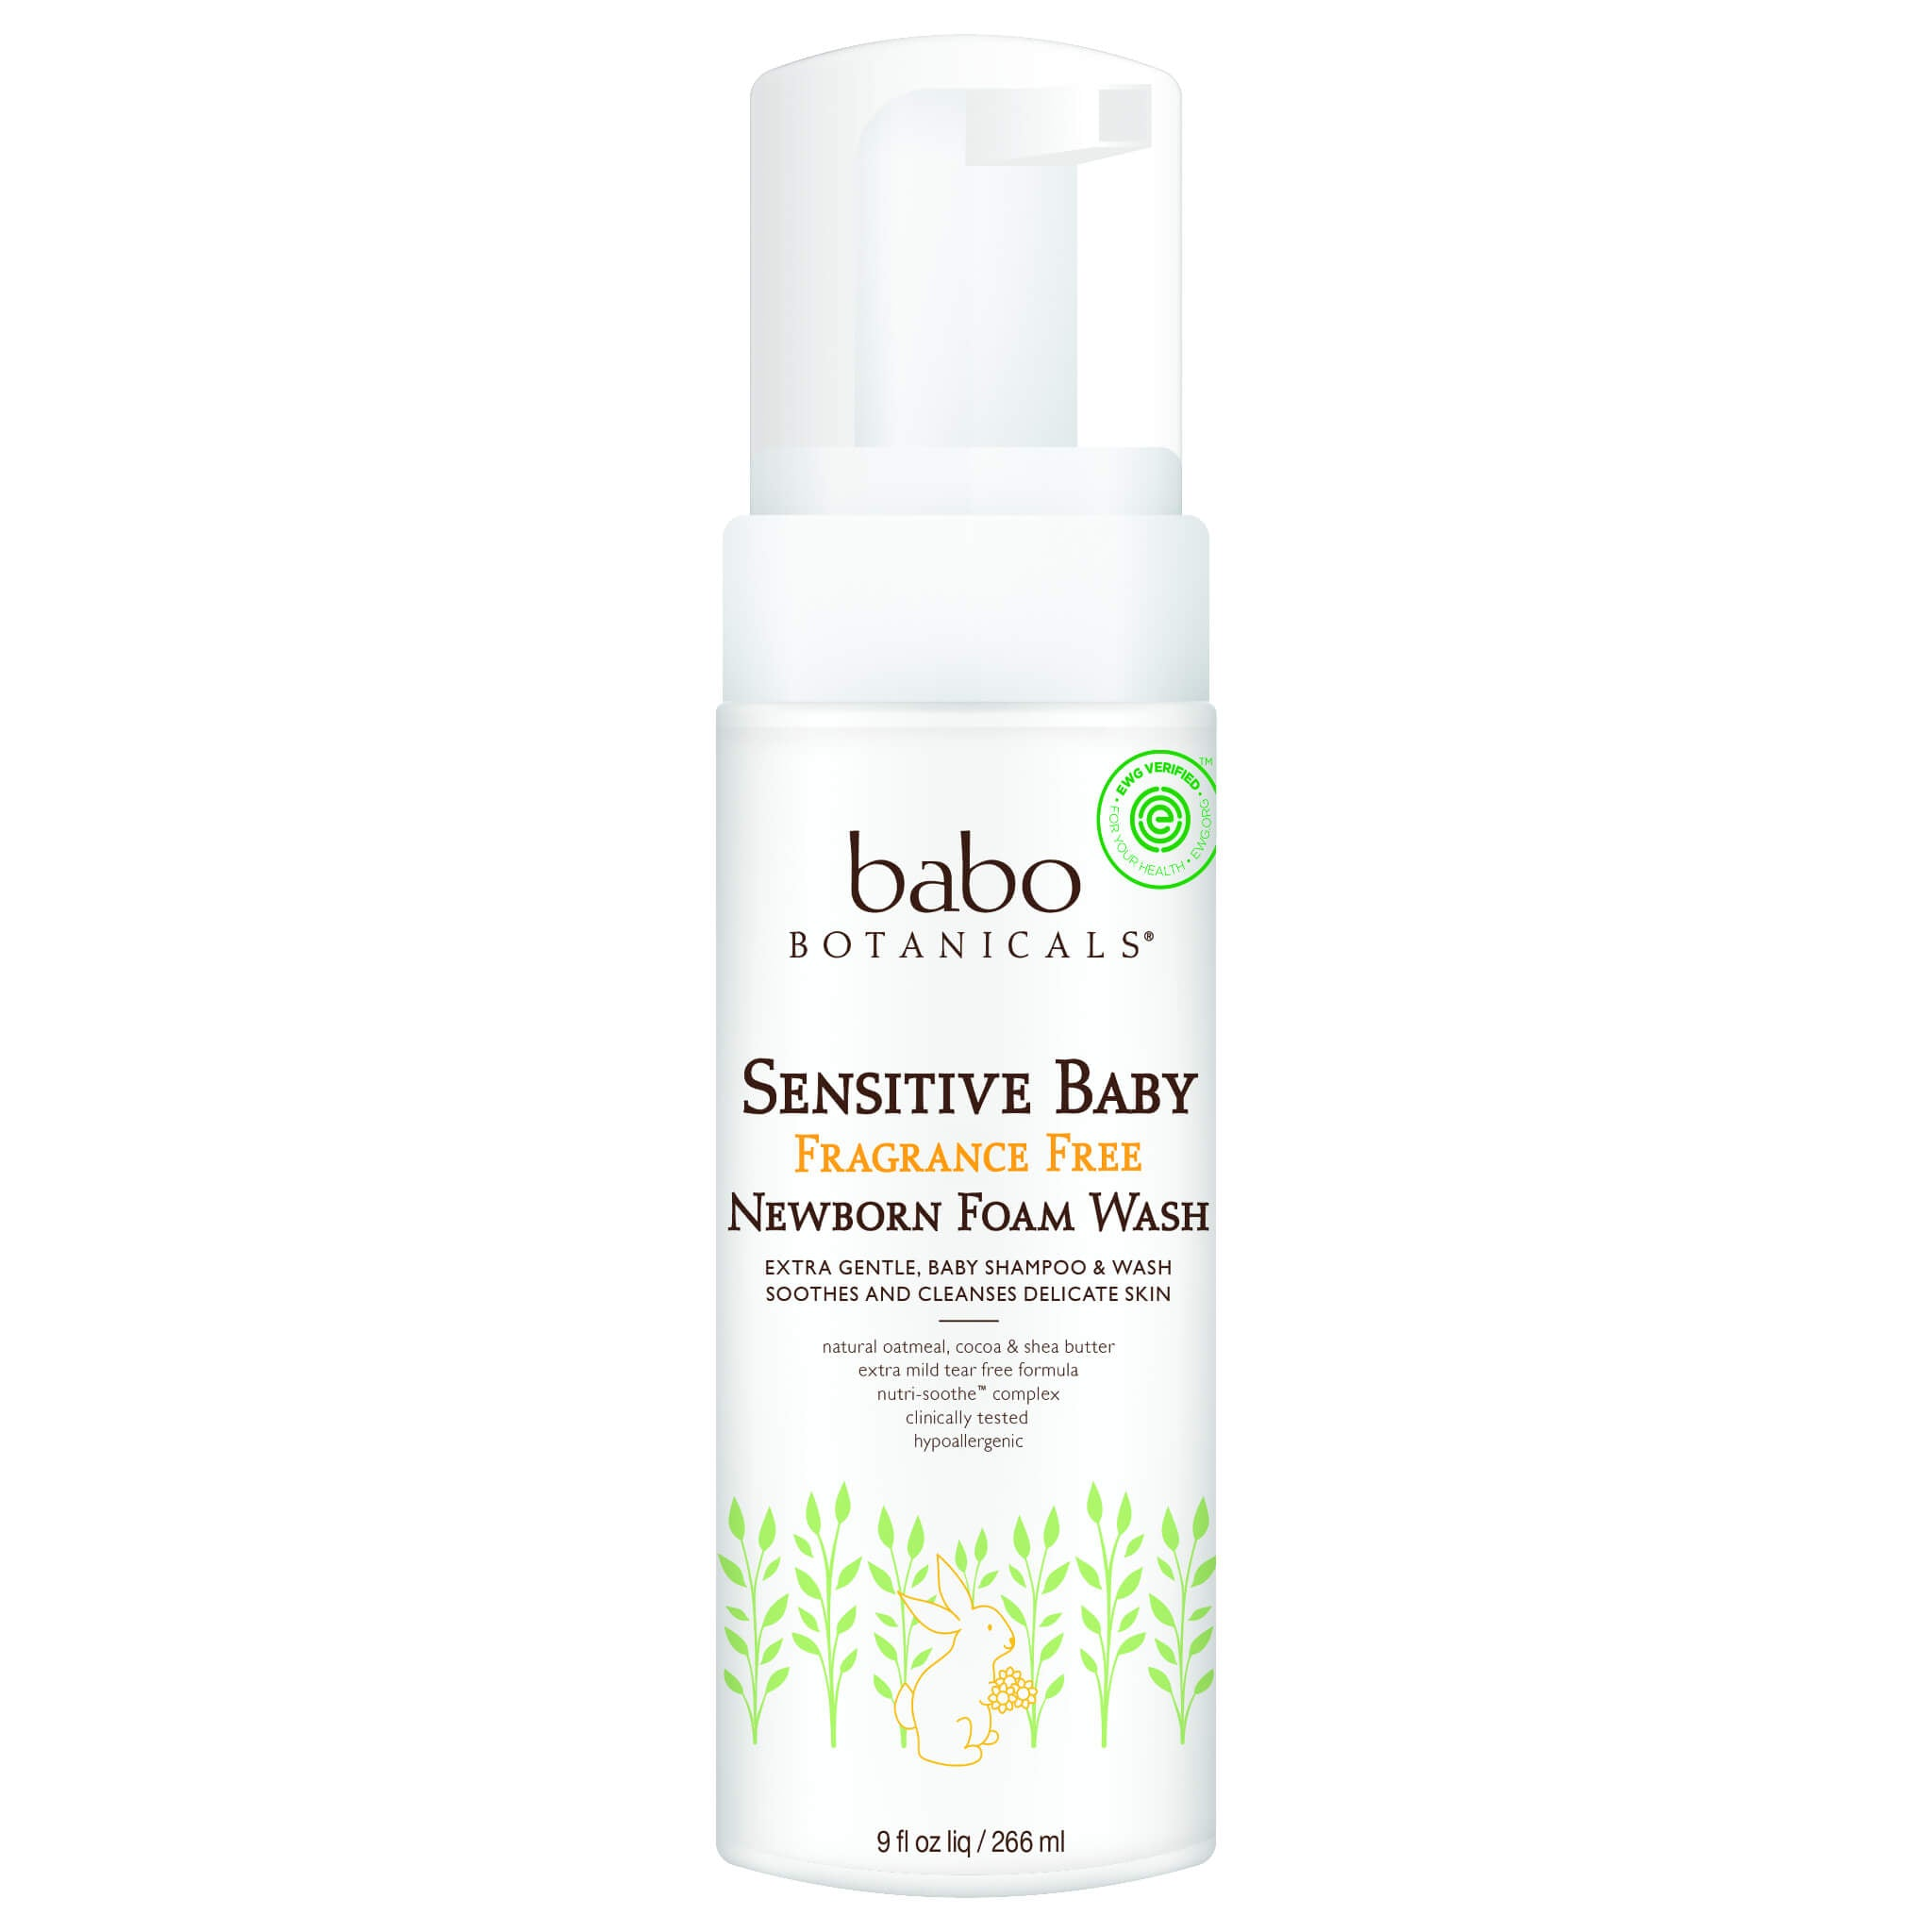 Babo Botanicals - Sensitive Newborn Foam Baby Wash - Fragrance Free (9 oz)